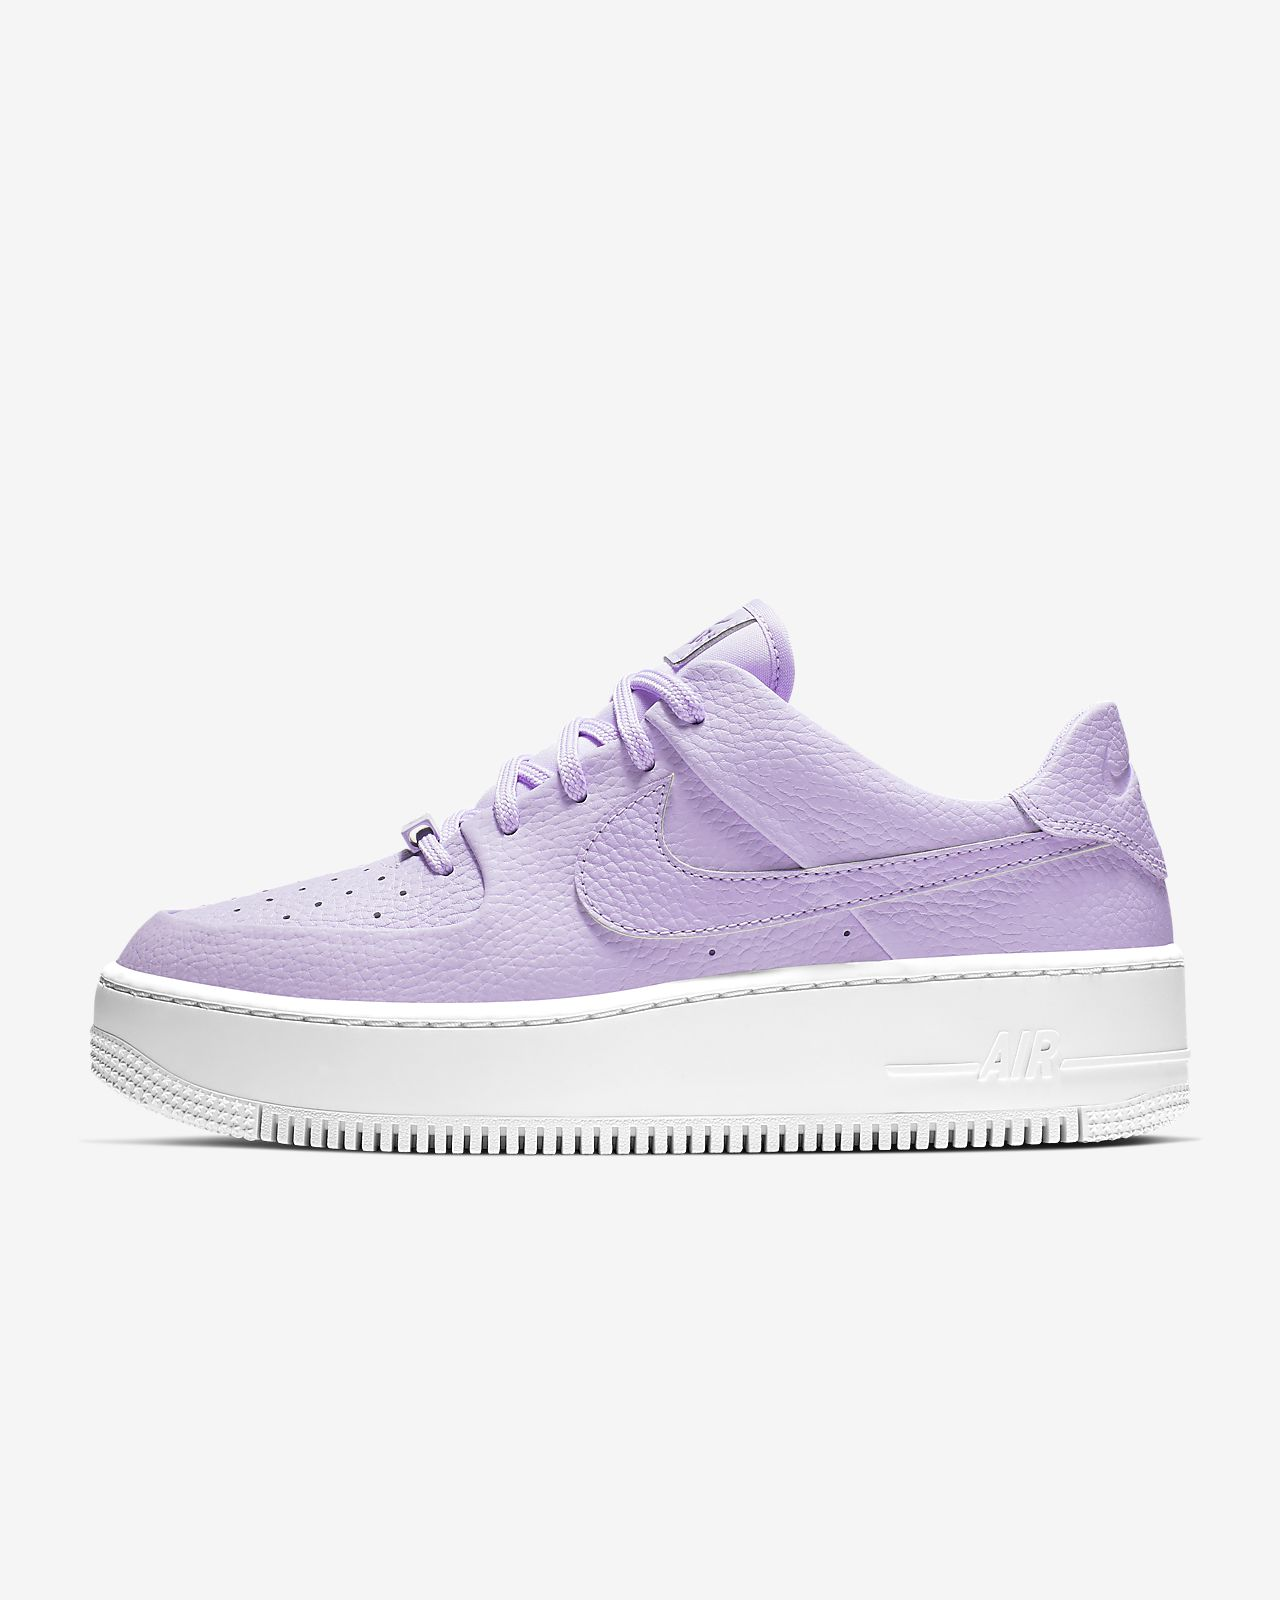 promo code 4b6f9 e2c49 Women s Shoe. Nike Air Force 1 Sage Low